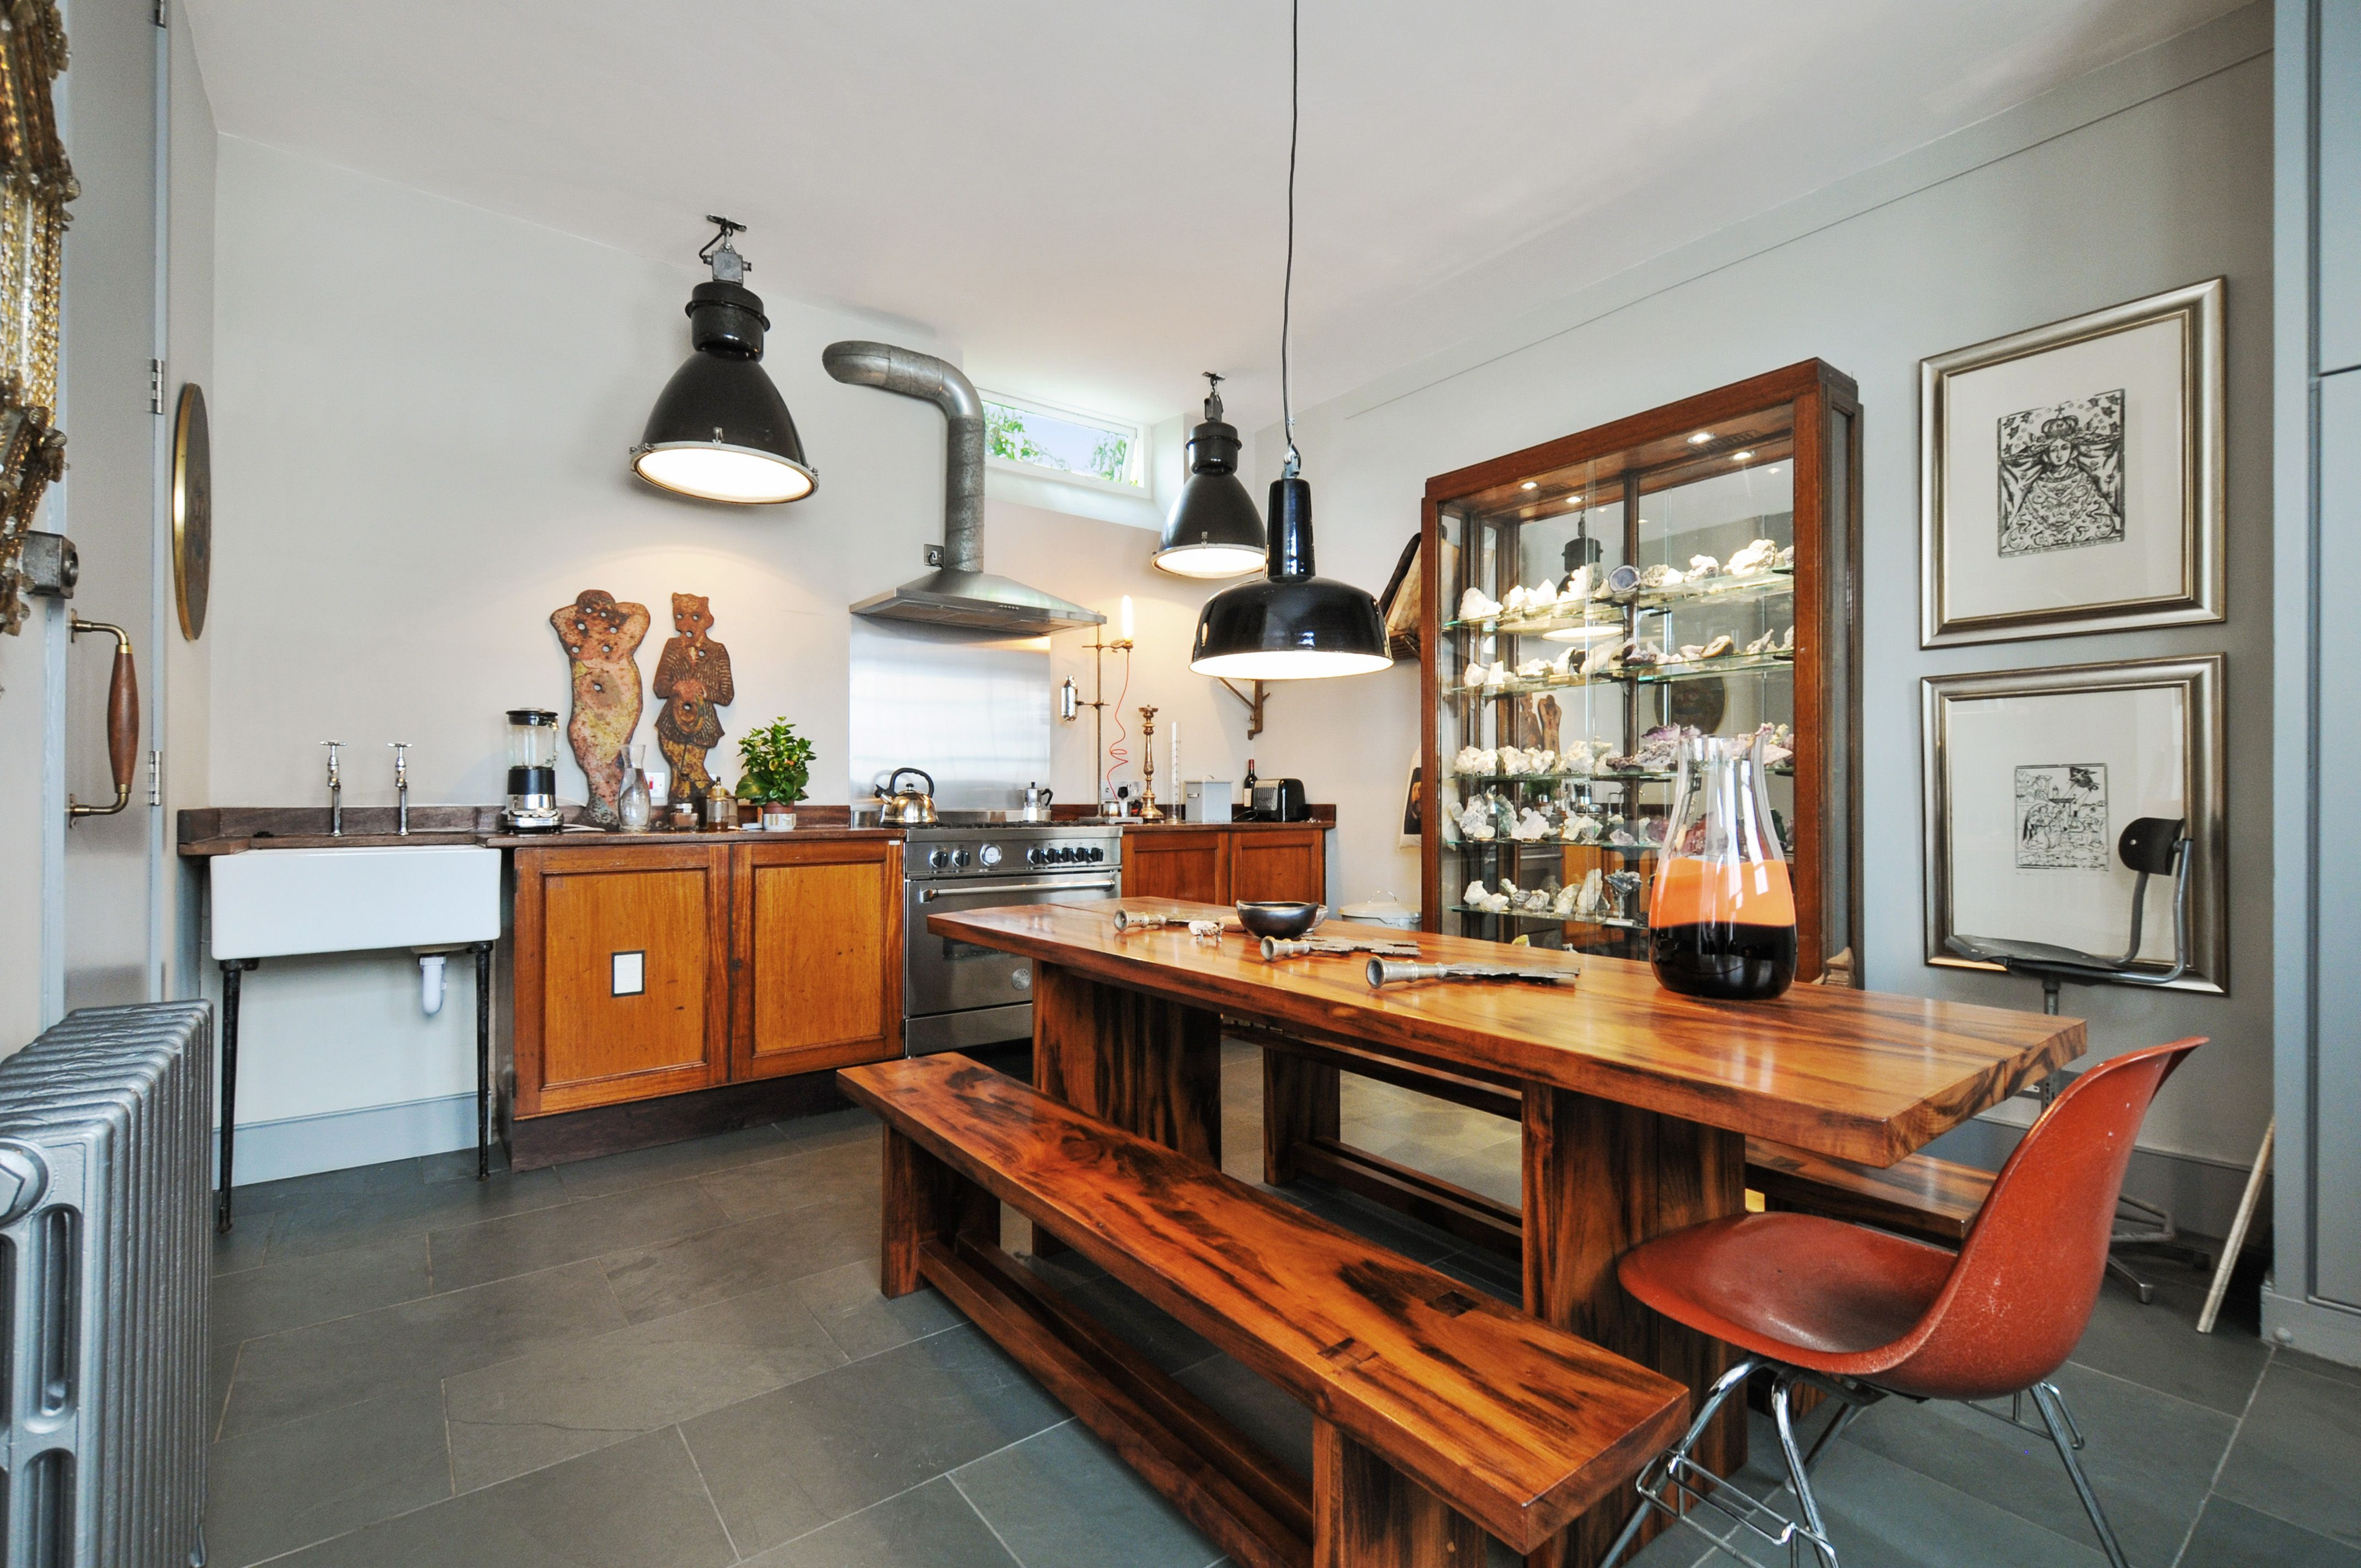 Stunning modern/retro kitchen - www.photoplan.co.uk